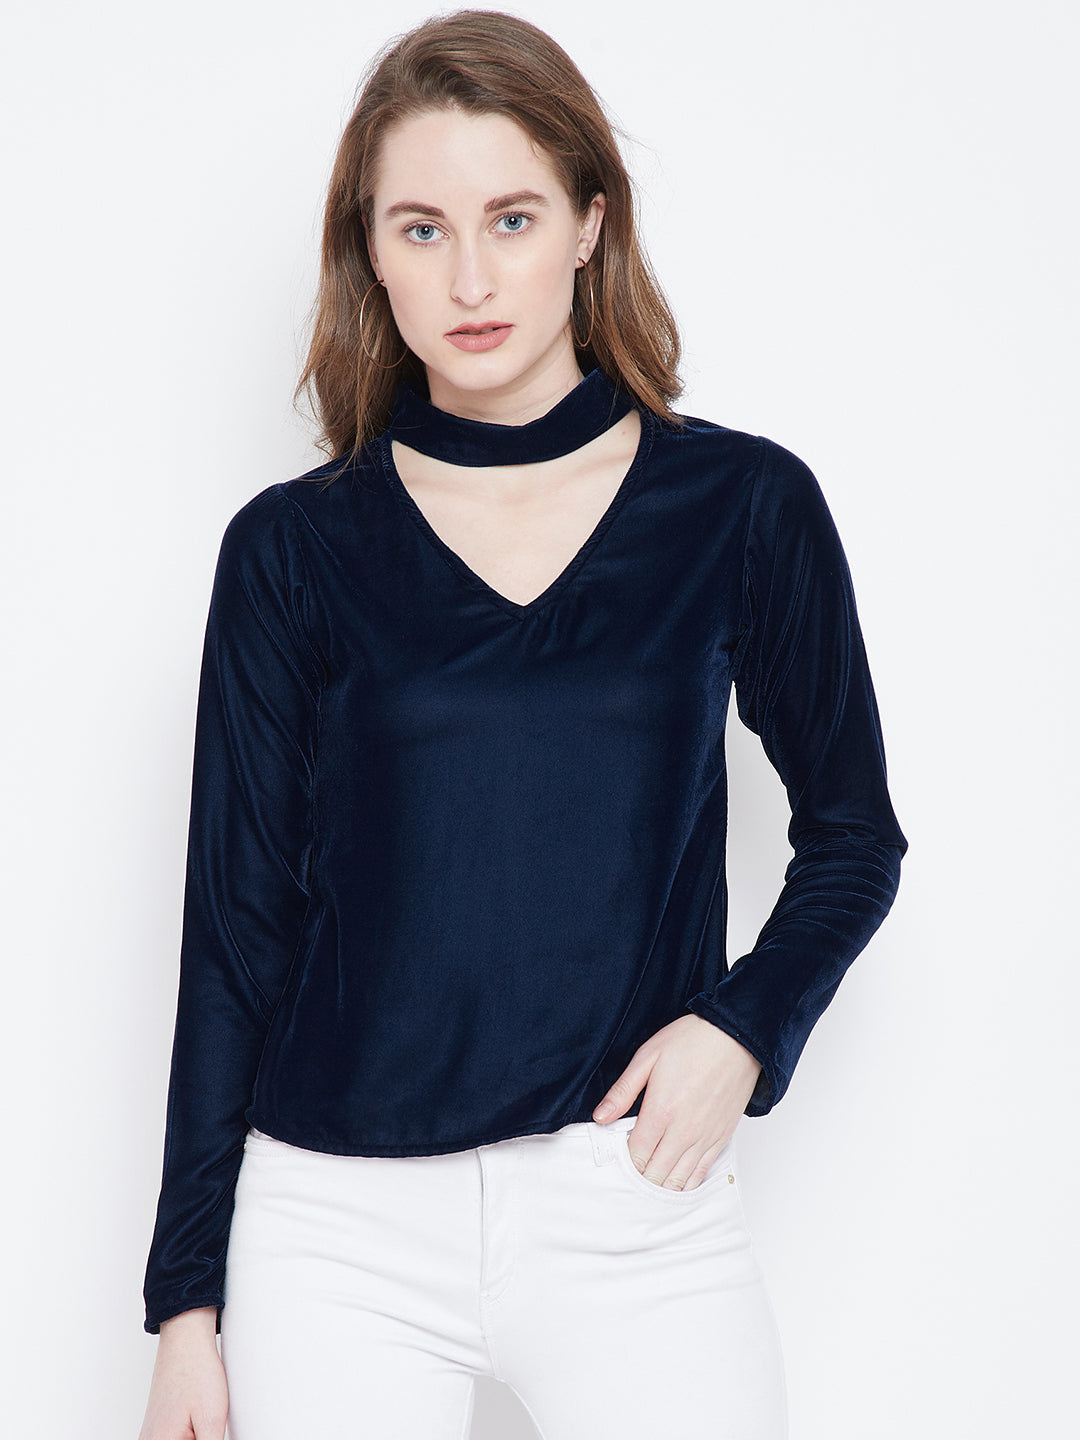 Berrylush Navy Blue Velvet A-Line Top